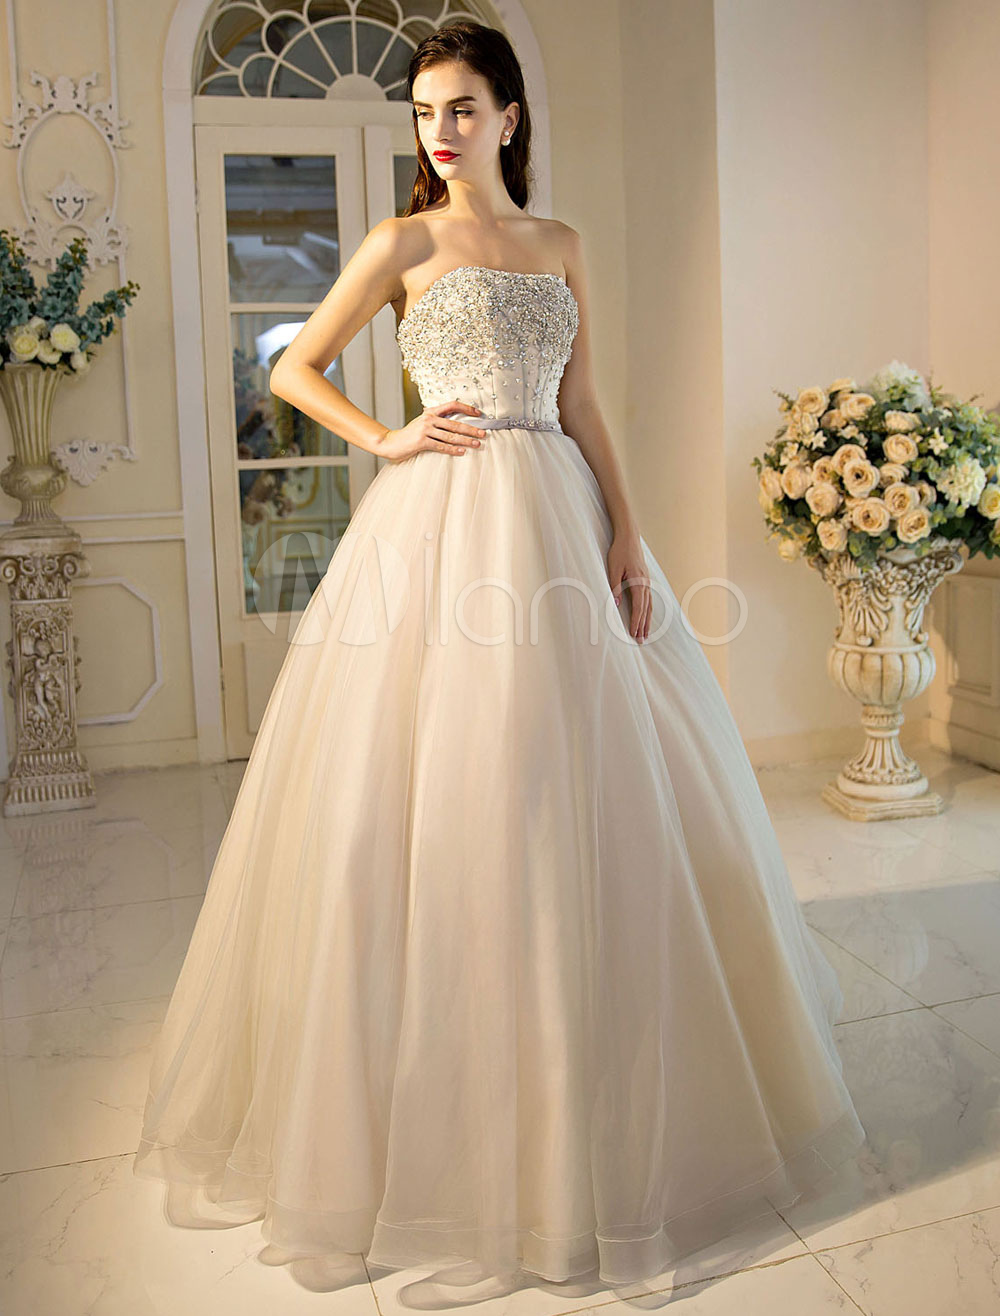 Buy Princess Quinceanera Dress Strapless Wedding Dress Sweetheart Neckline Beaded Sash Tulle Floor Length Bridal Gown for $237.59 in Milanoo store